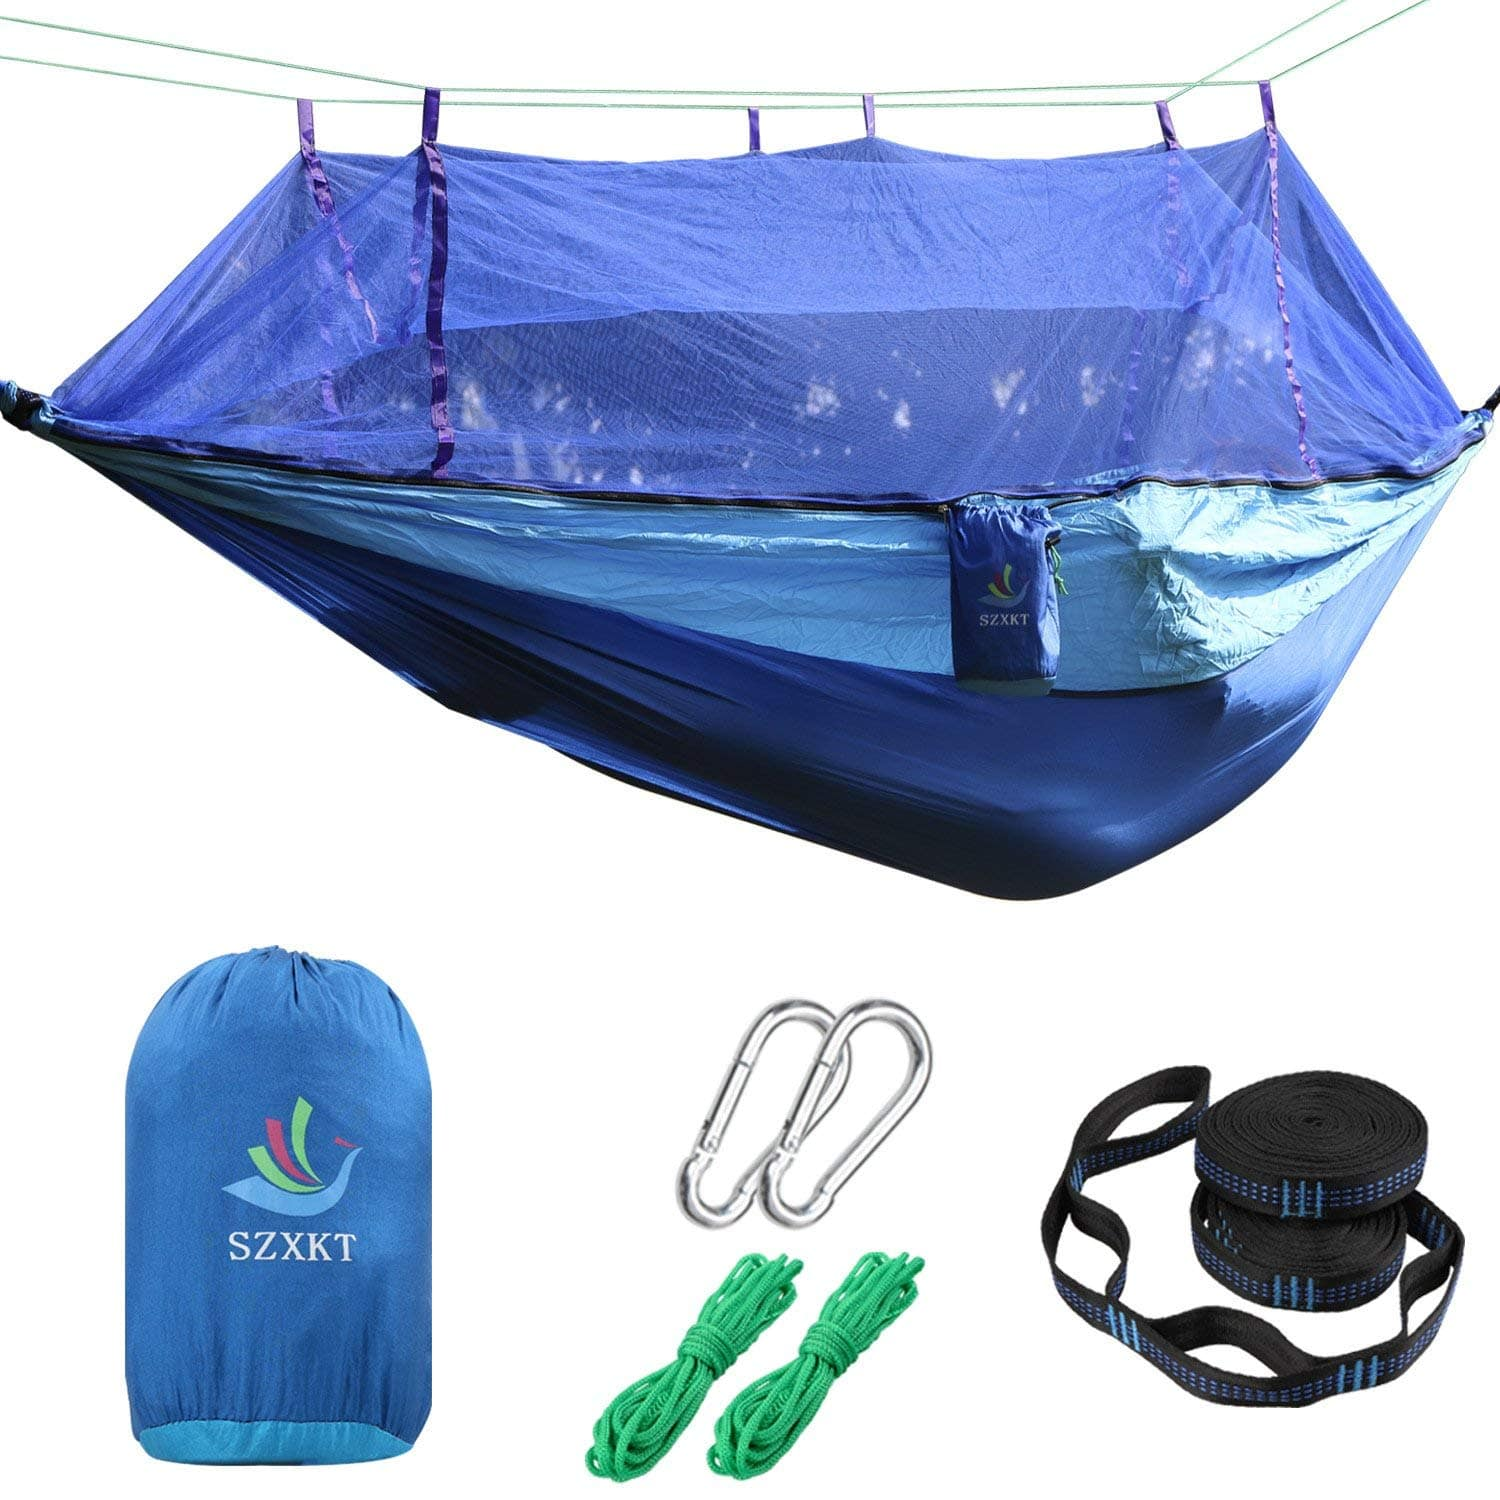 Camping Double Hammock Mosquito Net Outdoor Hammock Travel Bed Lightweight Parachute Fabric,Portable Hammock for Travel, Hiking $7.98 Amazon